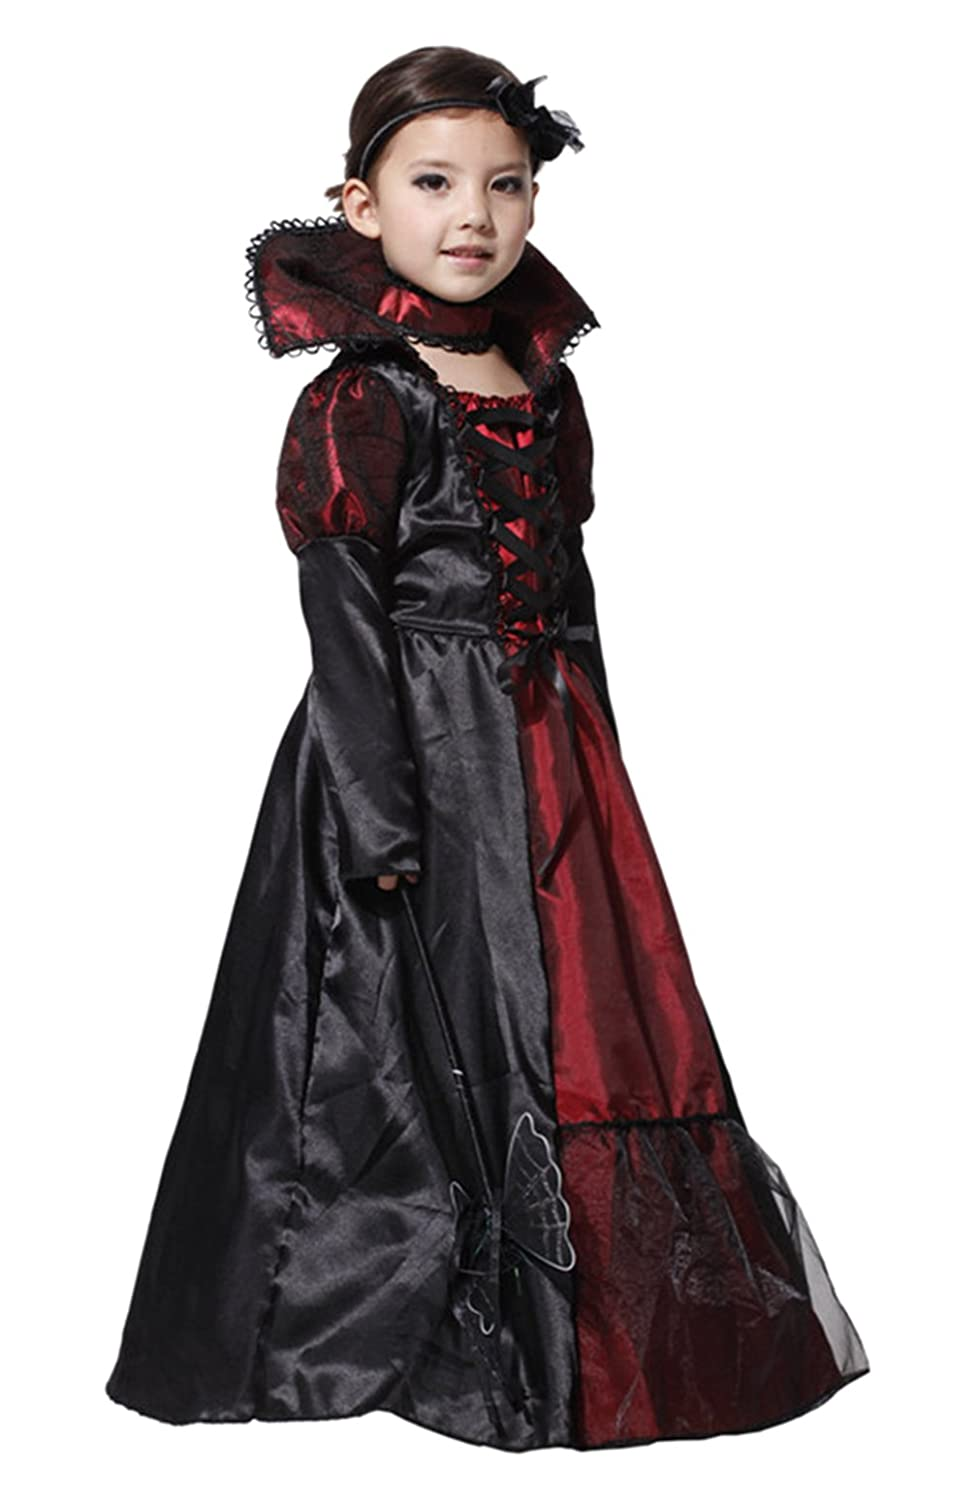 Royal Vampire Costume Set for Girls Halloween Dress Up Party Vampire-Themed Party Role-Playing Carnival Cosplay